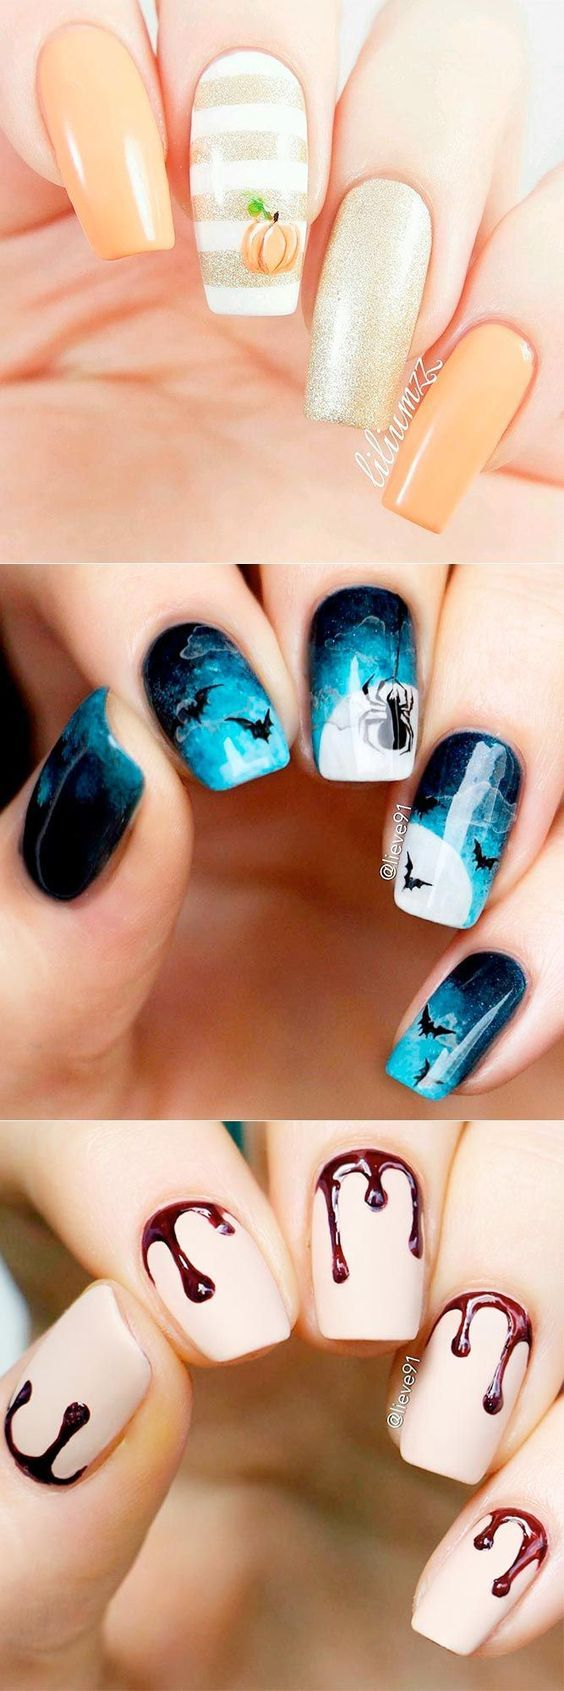 Cool Nailart Ideas For You To Have Trendy Nails This Halloween ...